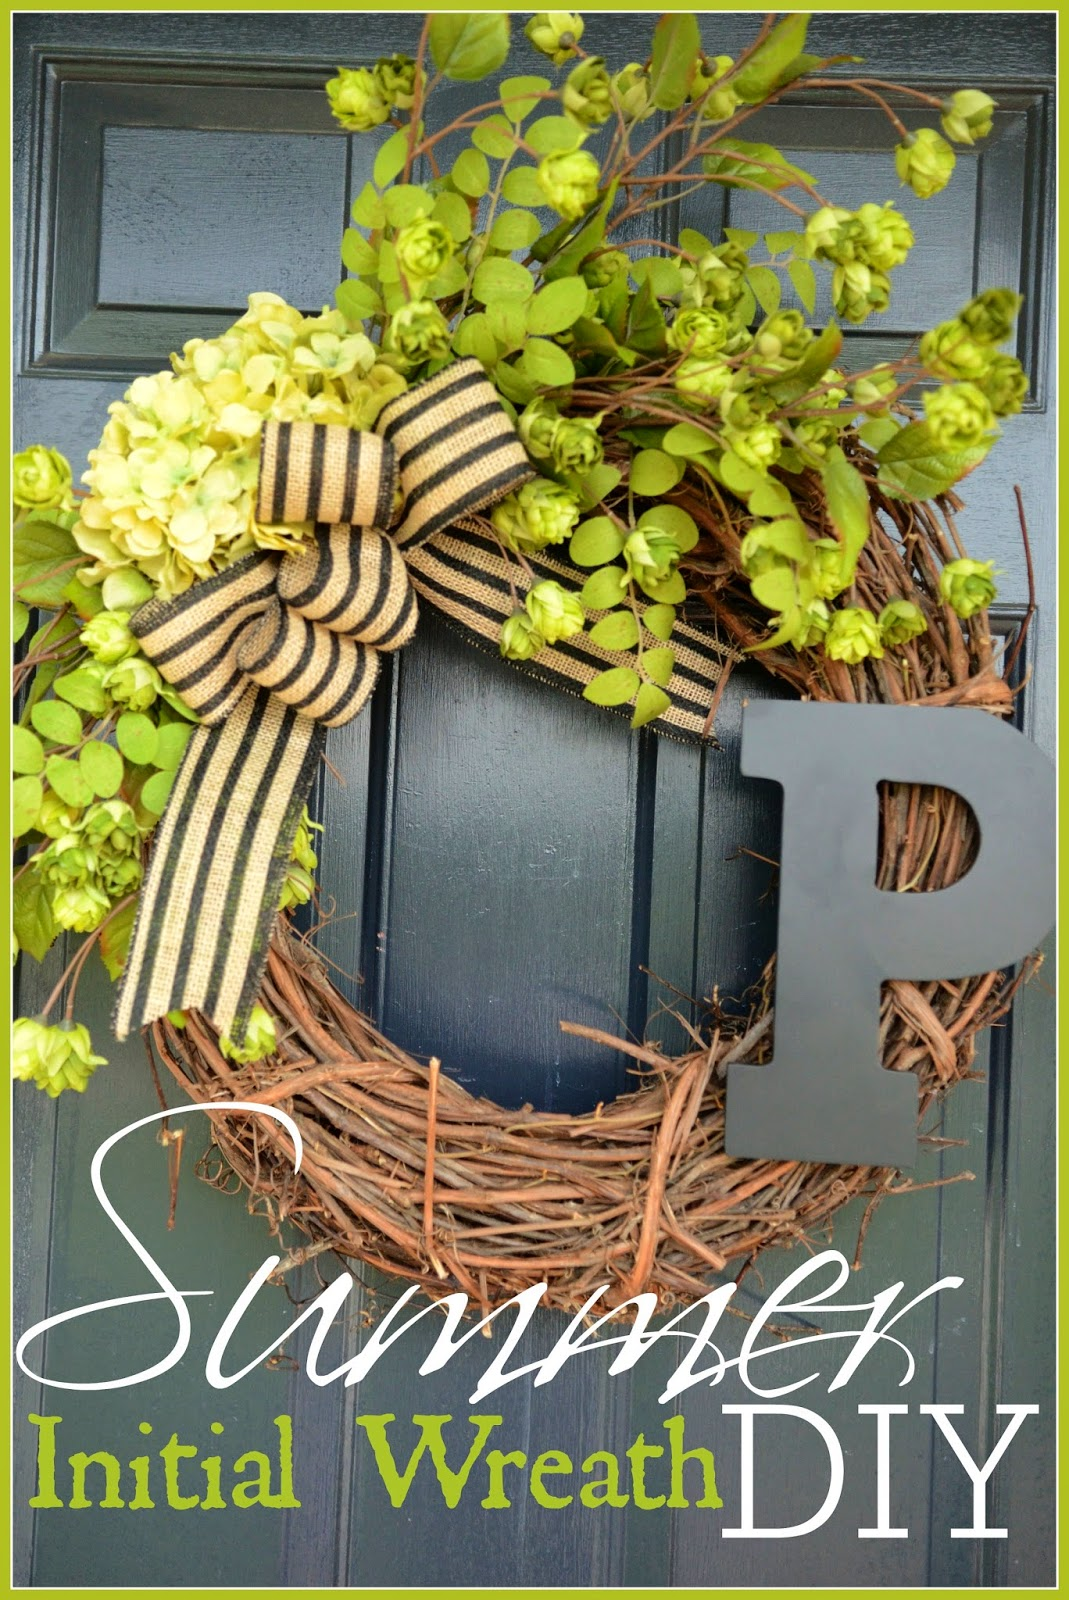 Summer initial wreath title page stonegbleblog com